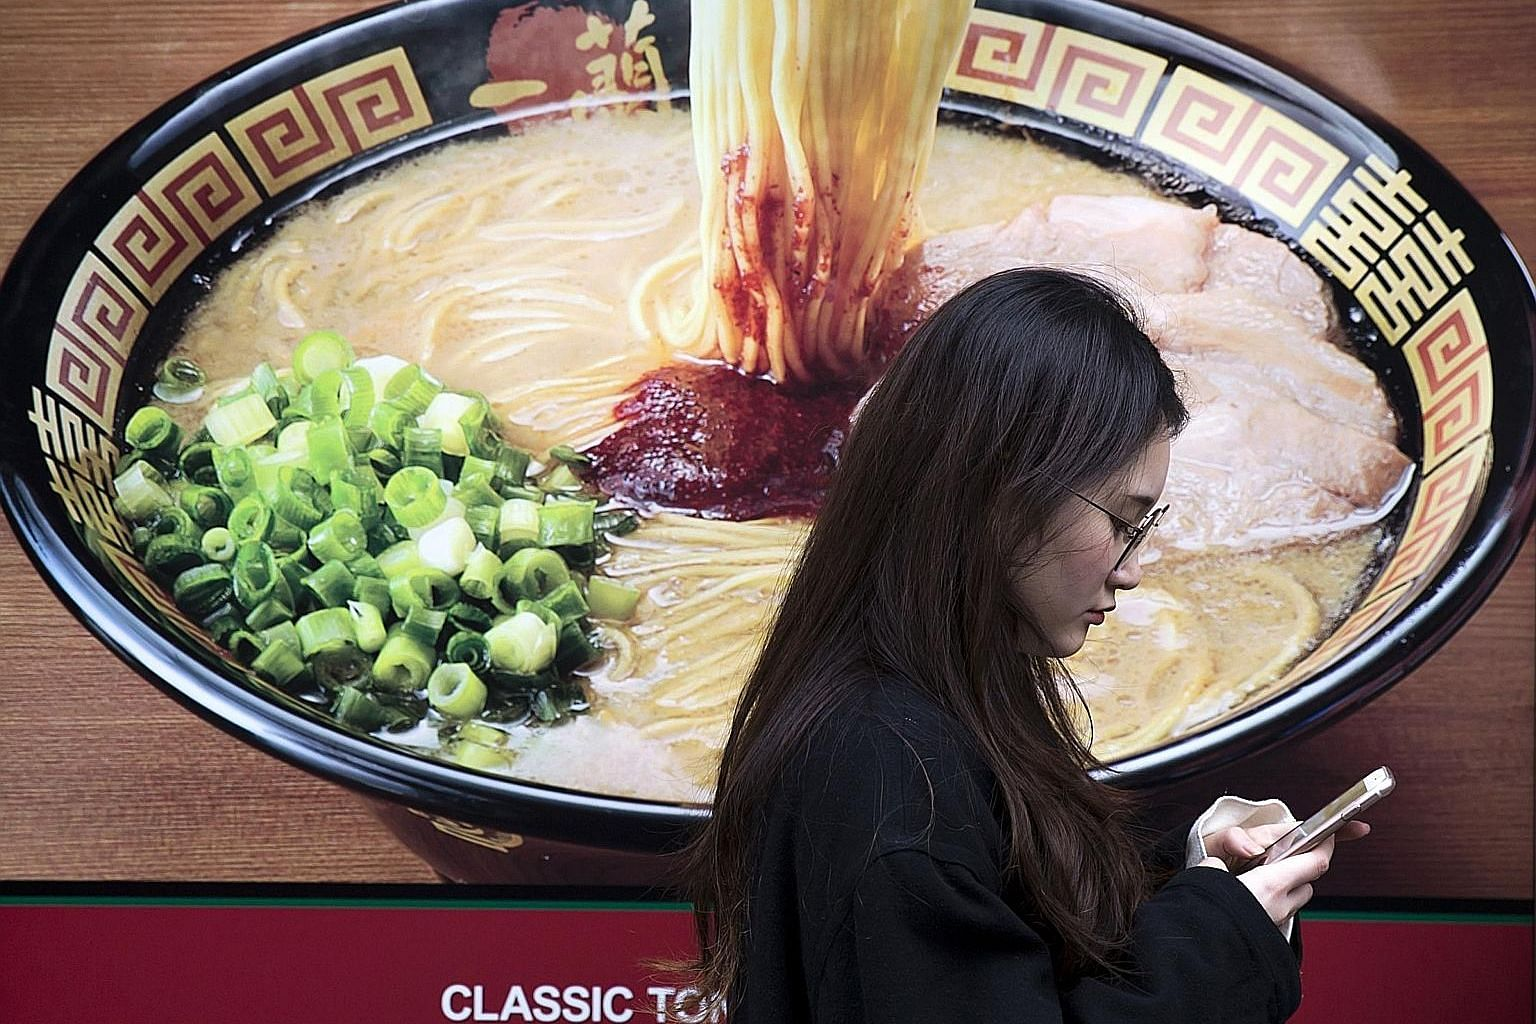 An advertisement for a ramen restaurant in Japan. A recent Japanese study notes that the popular ramen dish, being high in carbohydrates and salt, may increase the risk of stroke mortality.